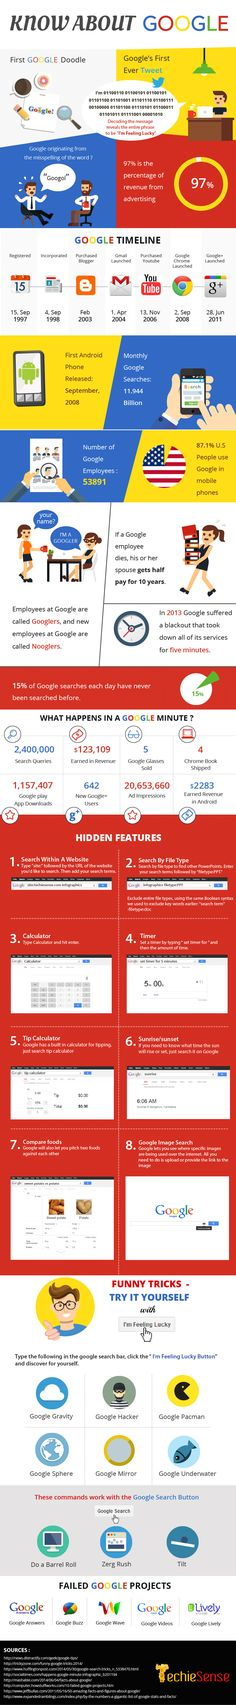 Know About #Google - #infographic